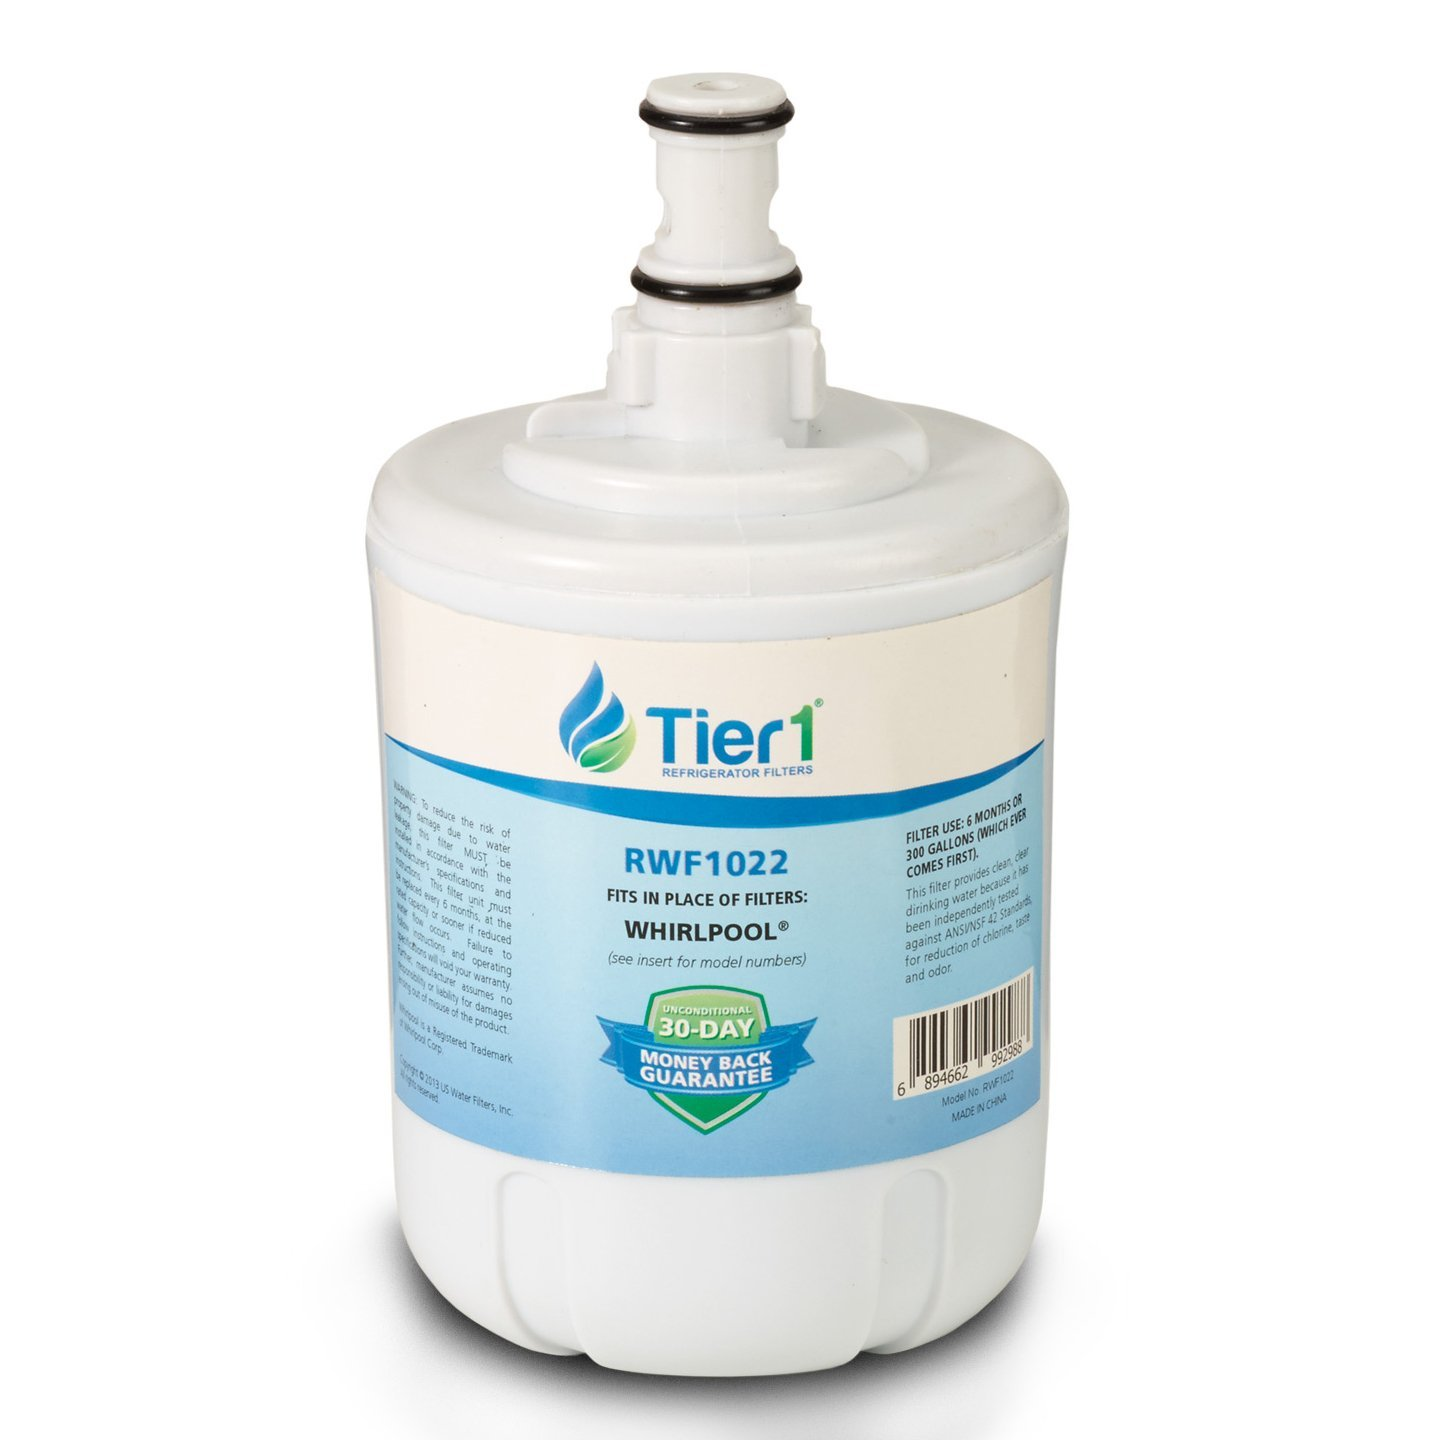 Tier1 8171413 Replacement for Whirlpool 8171413, Kenmore 9002, EDR8D1, 469002, 8171414 Refrigerator Water Filter